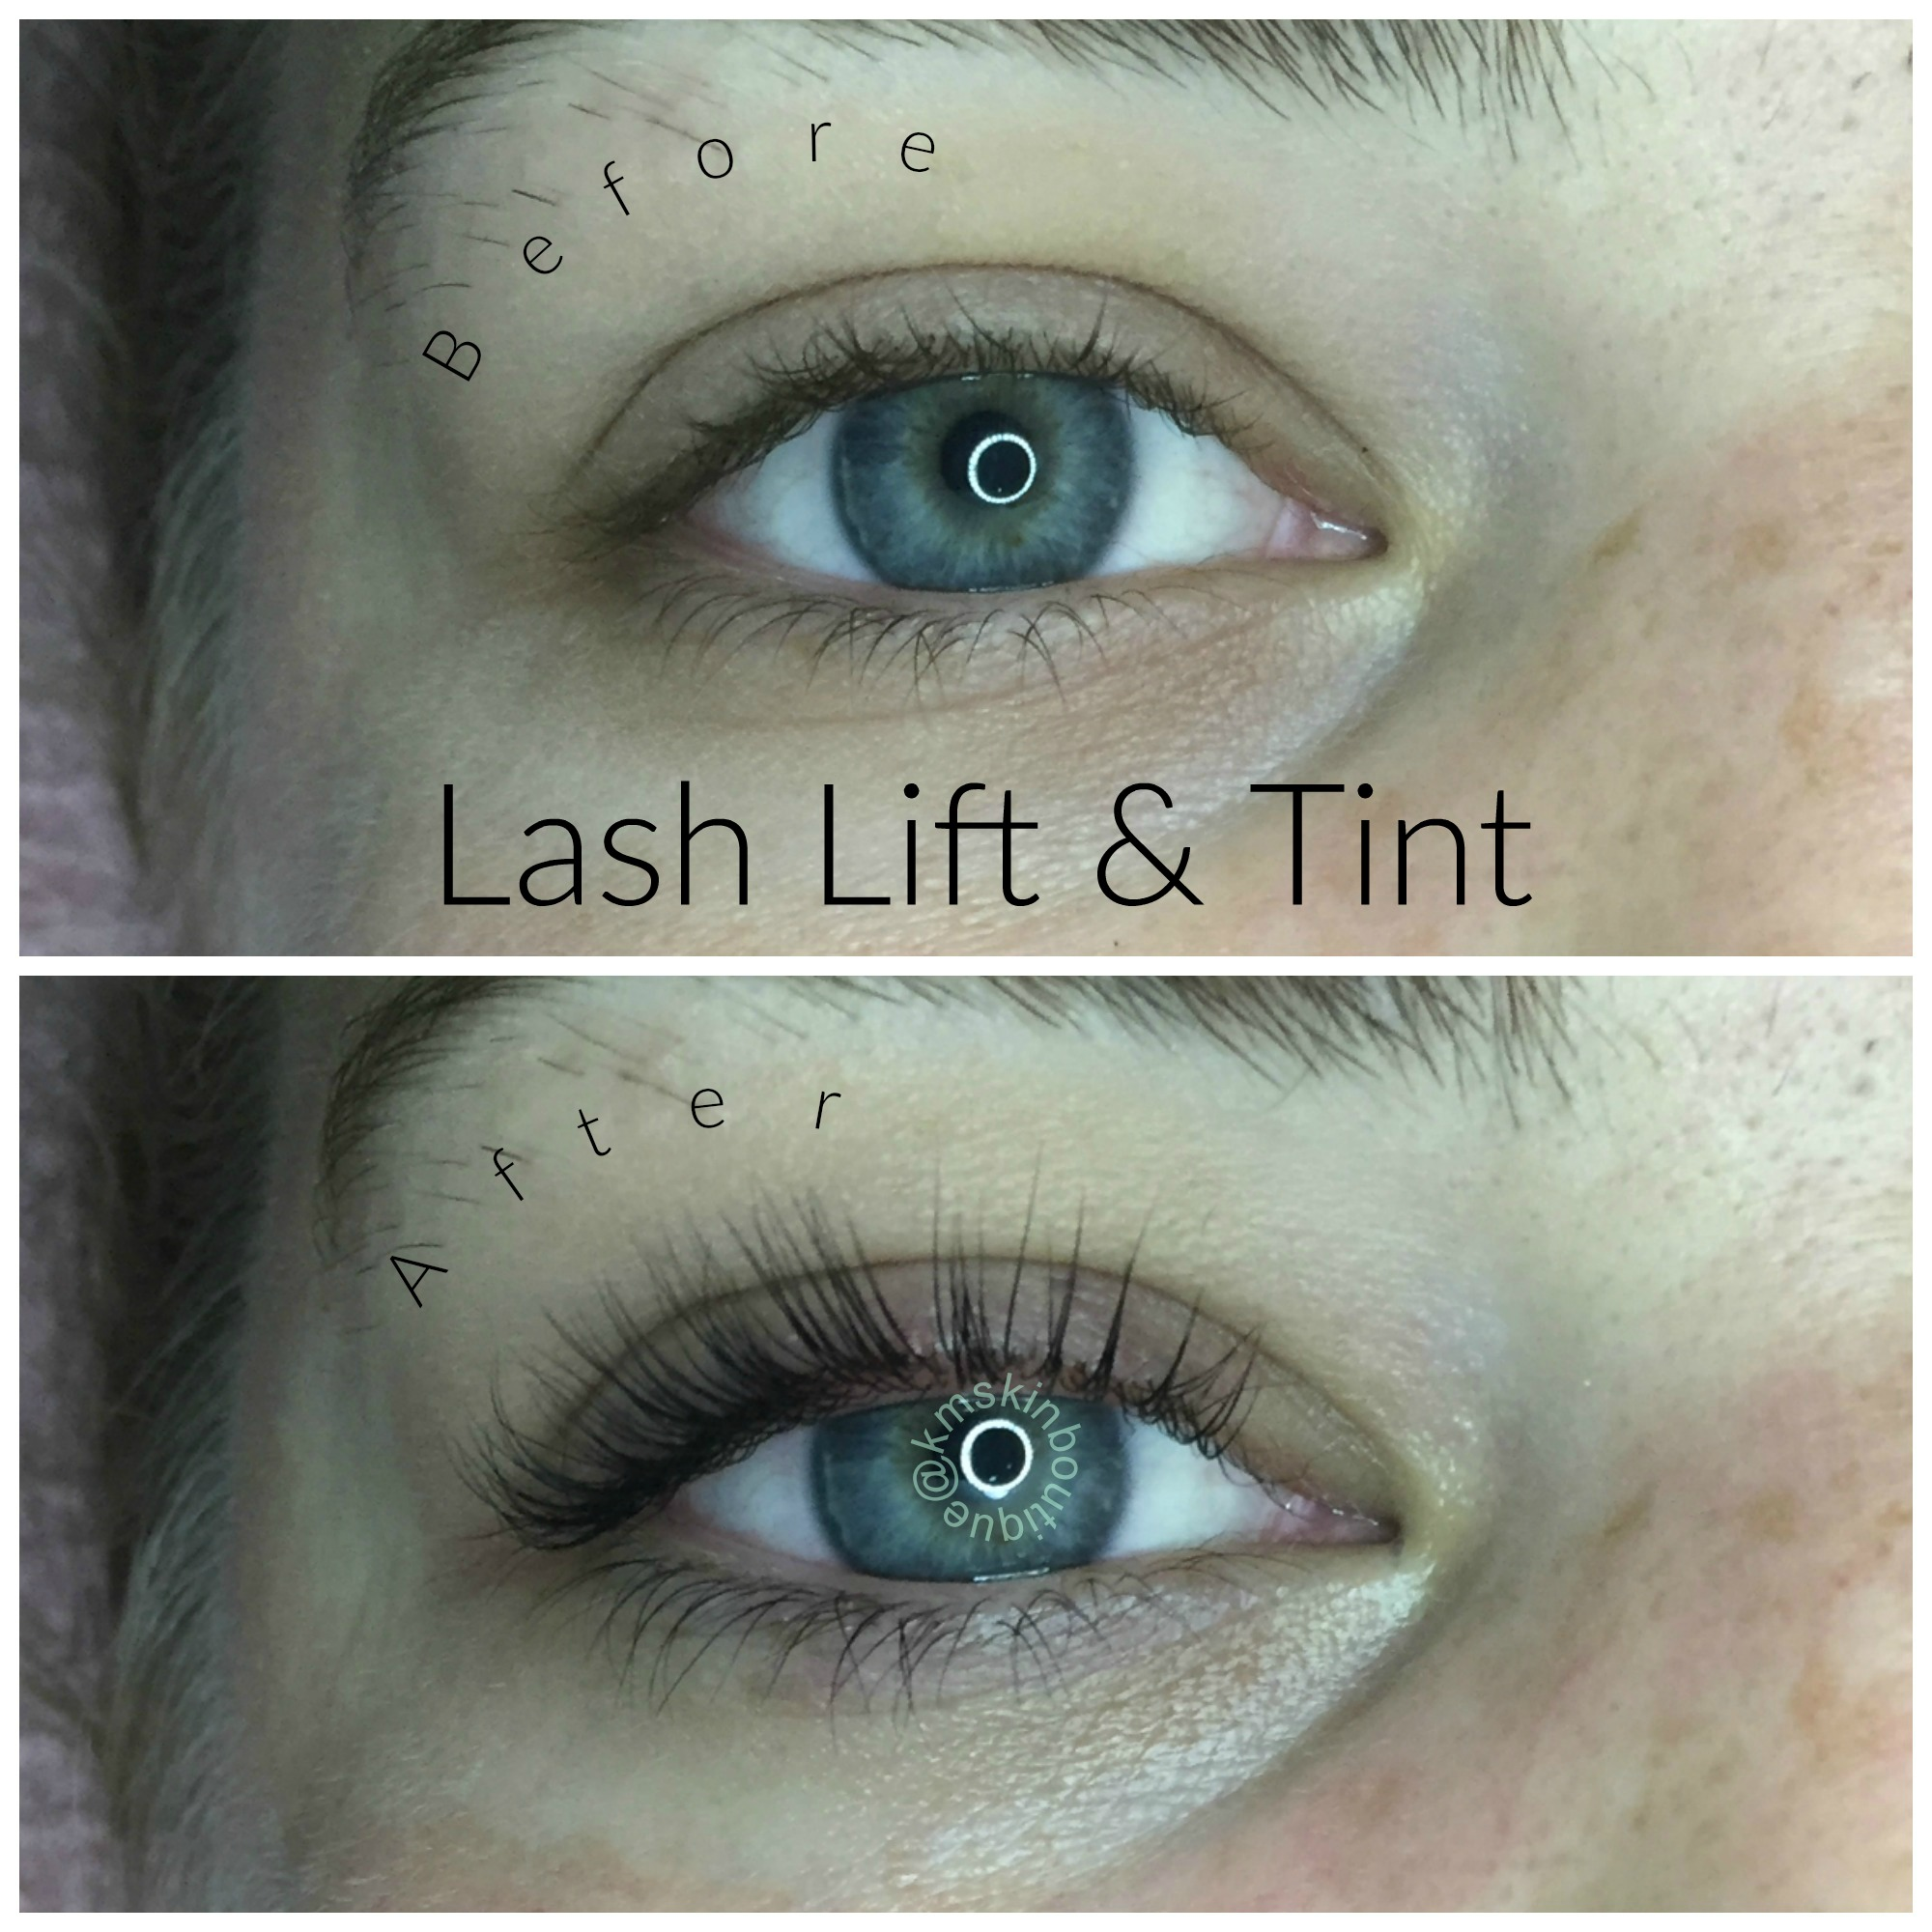 Lash Brow Services Kate Marie Skin Wax Boutique